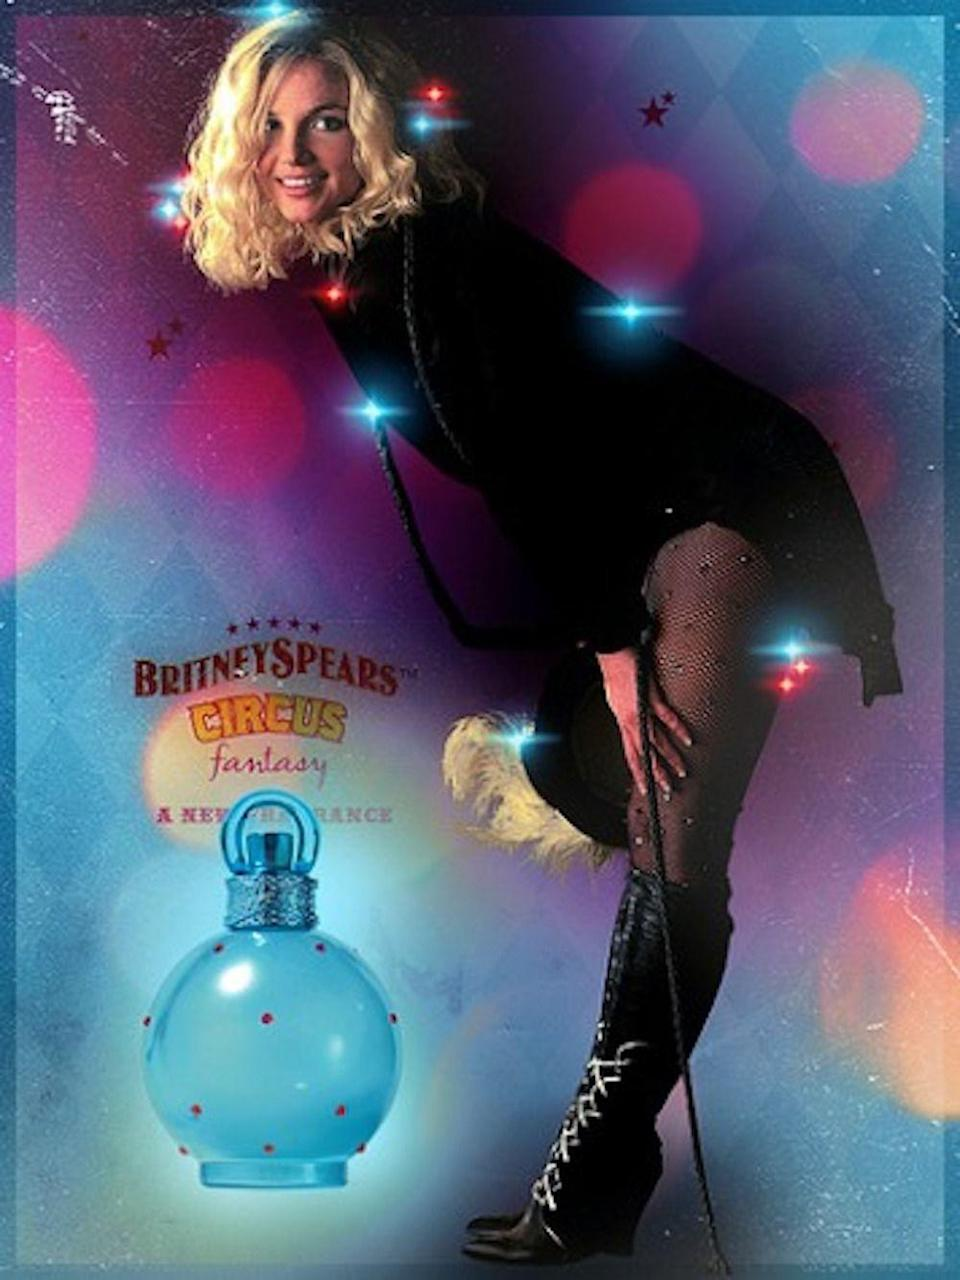 <p>If you don't own a bottle of Circus, ARE YOU EVEN A BRITNEY FAN?</p>